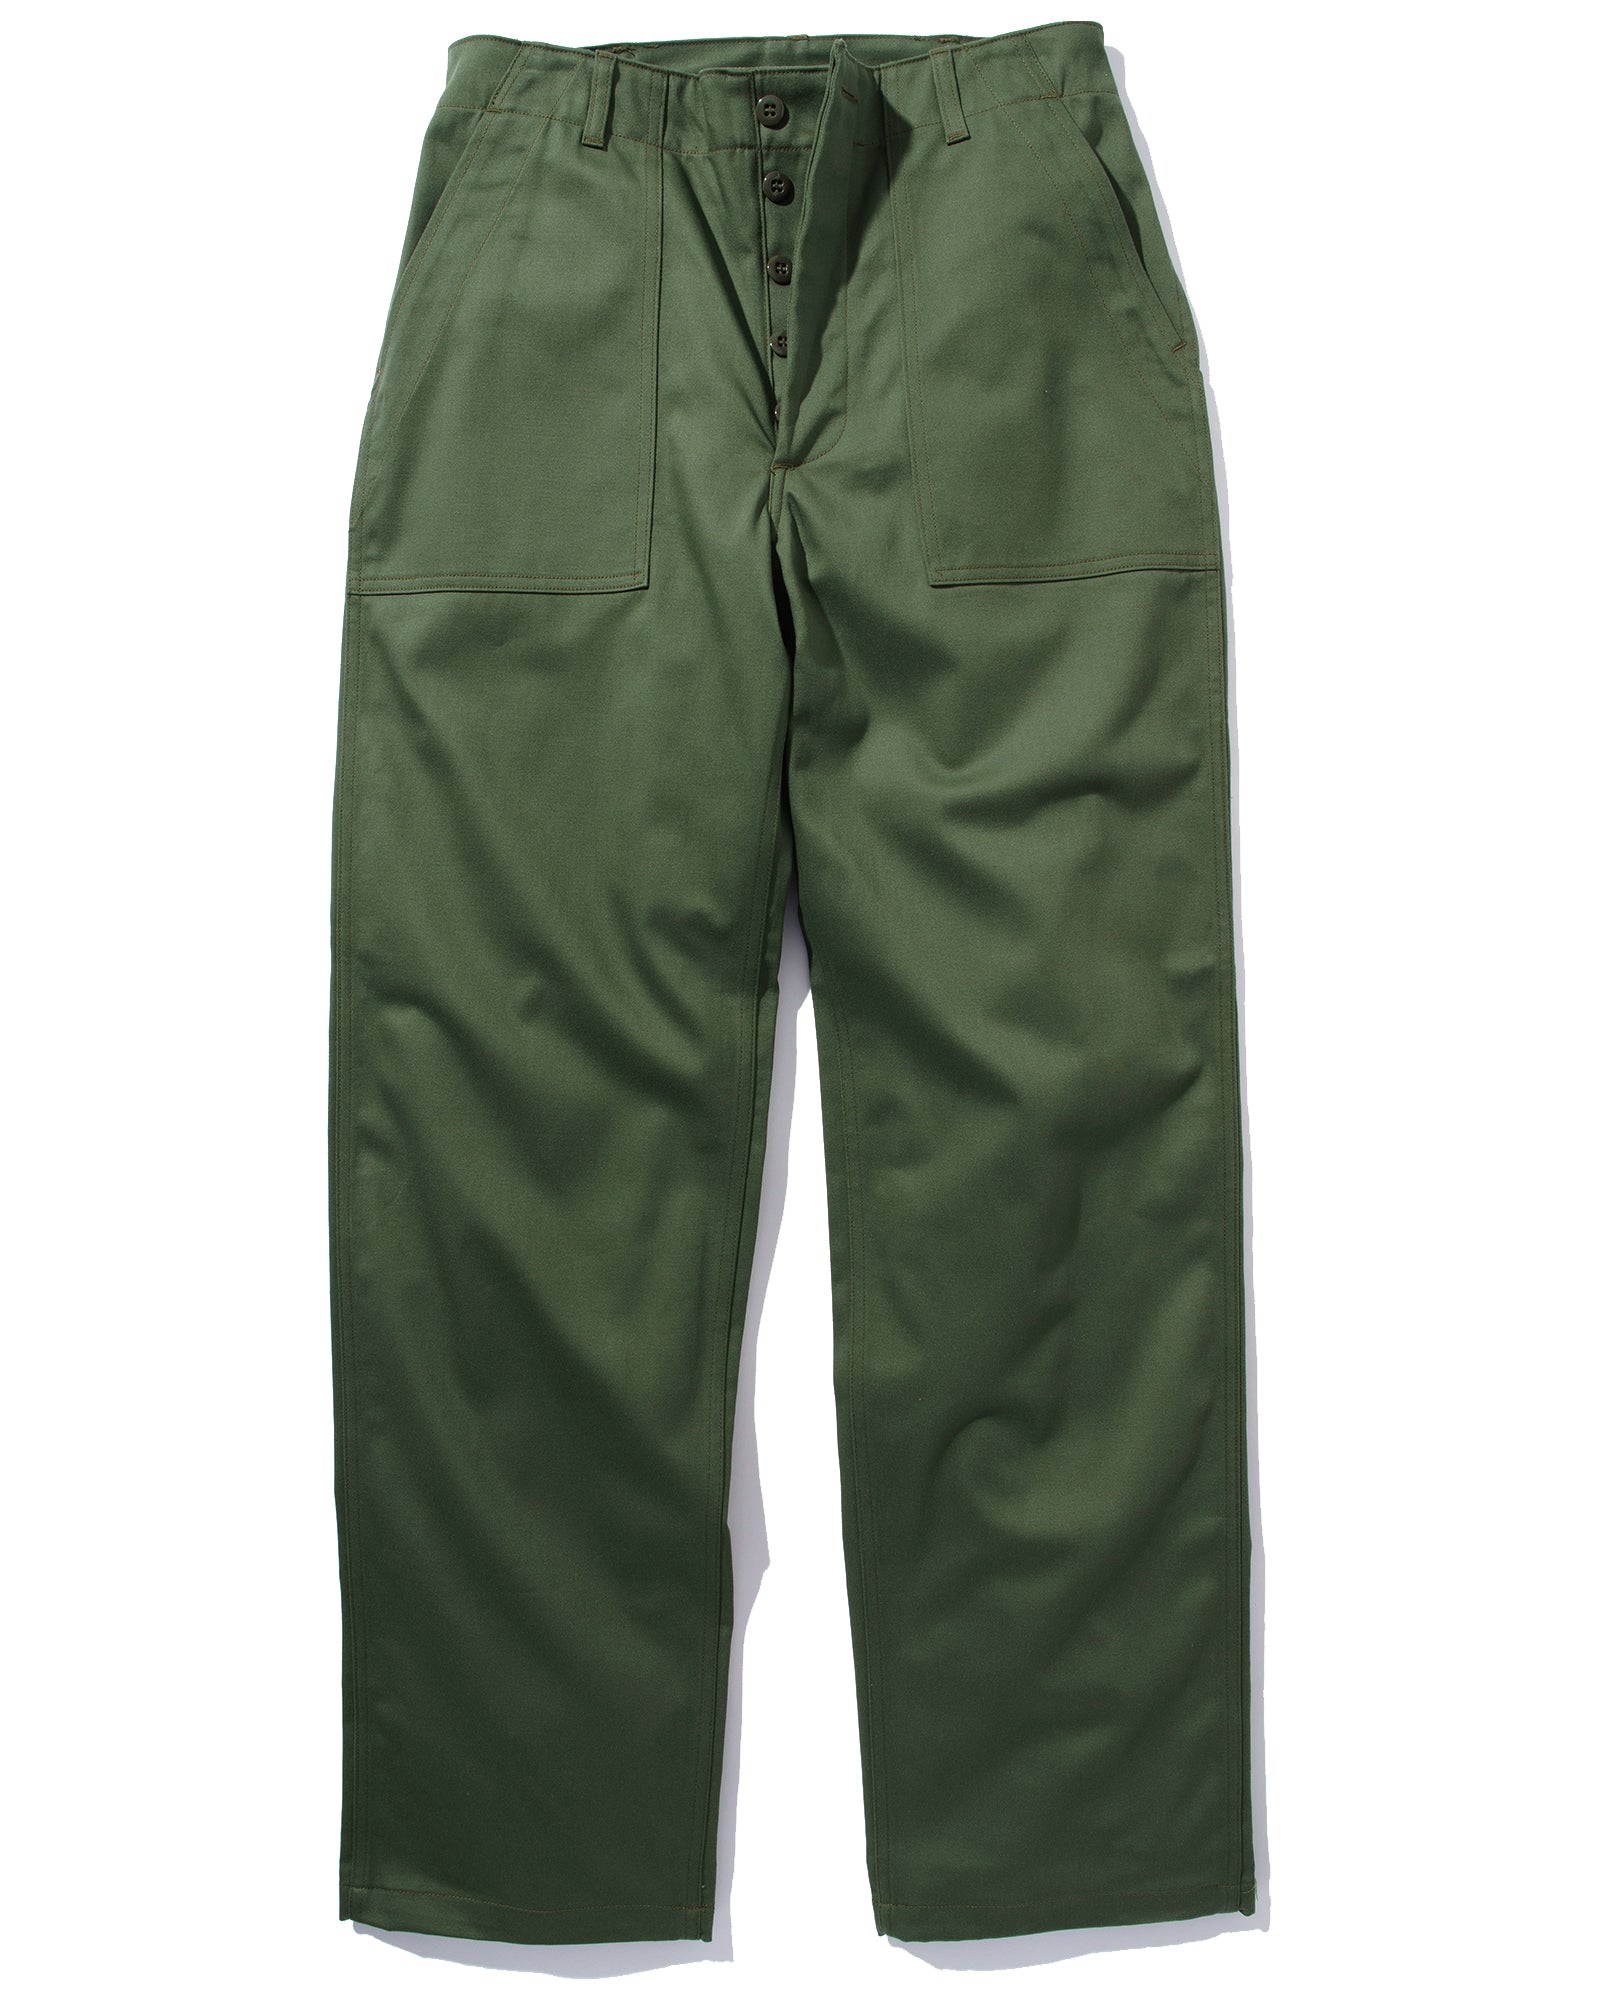 TROUSERS, MEN'S COTTON SATEEN